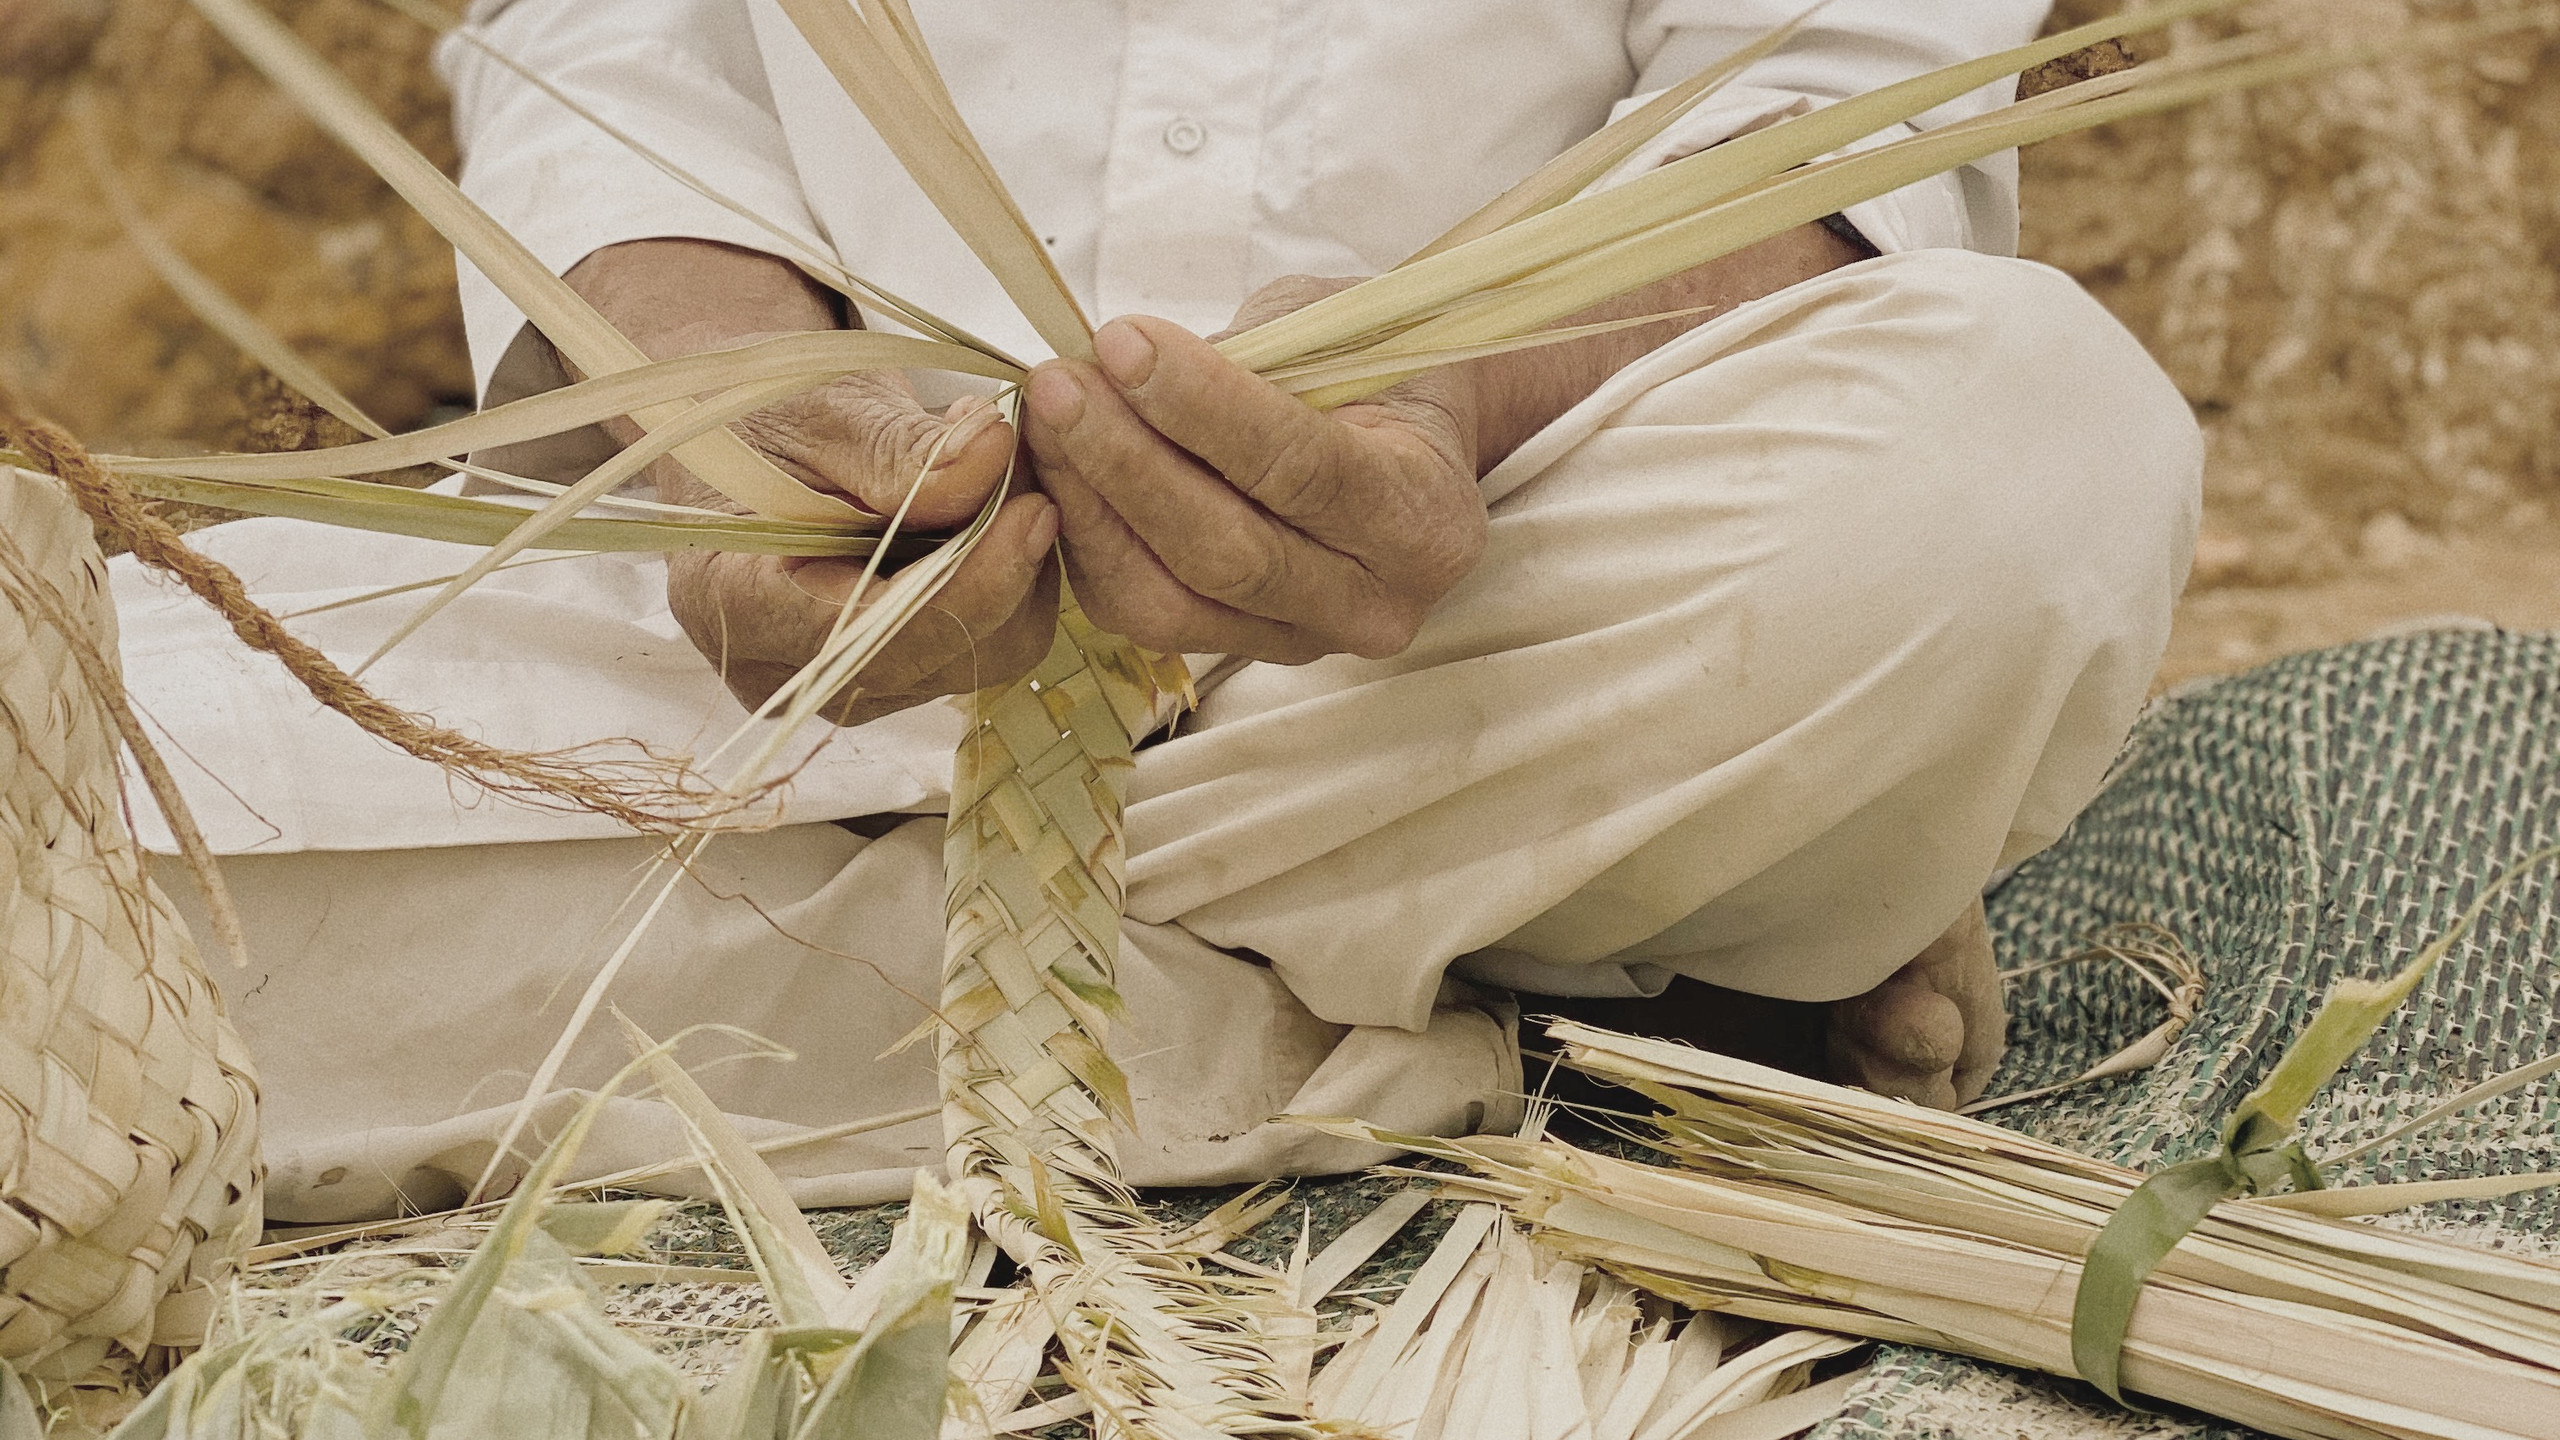 Making basket from dried palm